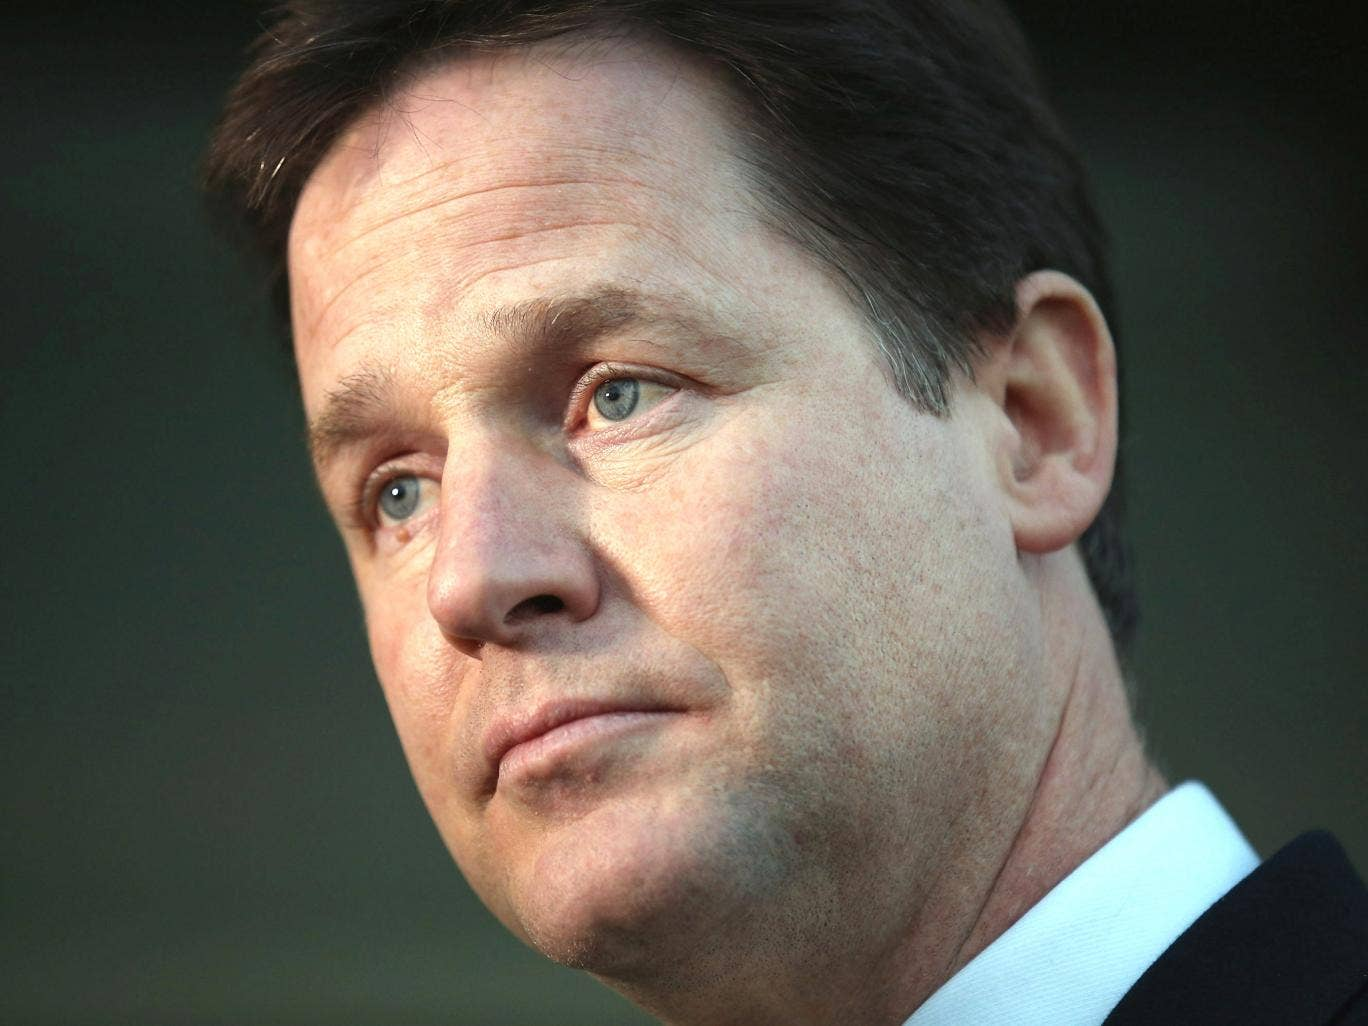 Liberal Democrat leader Nick Clegg